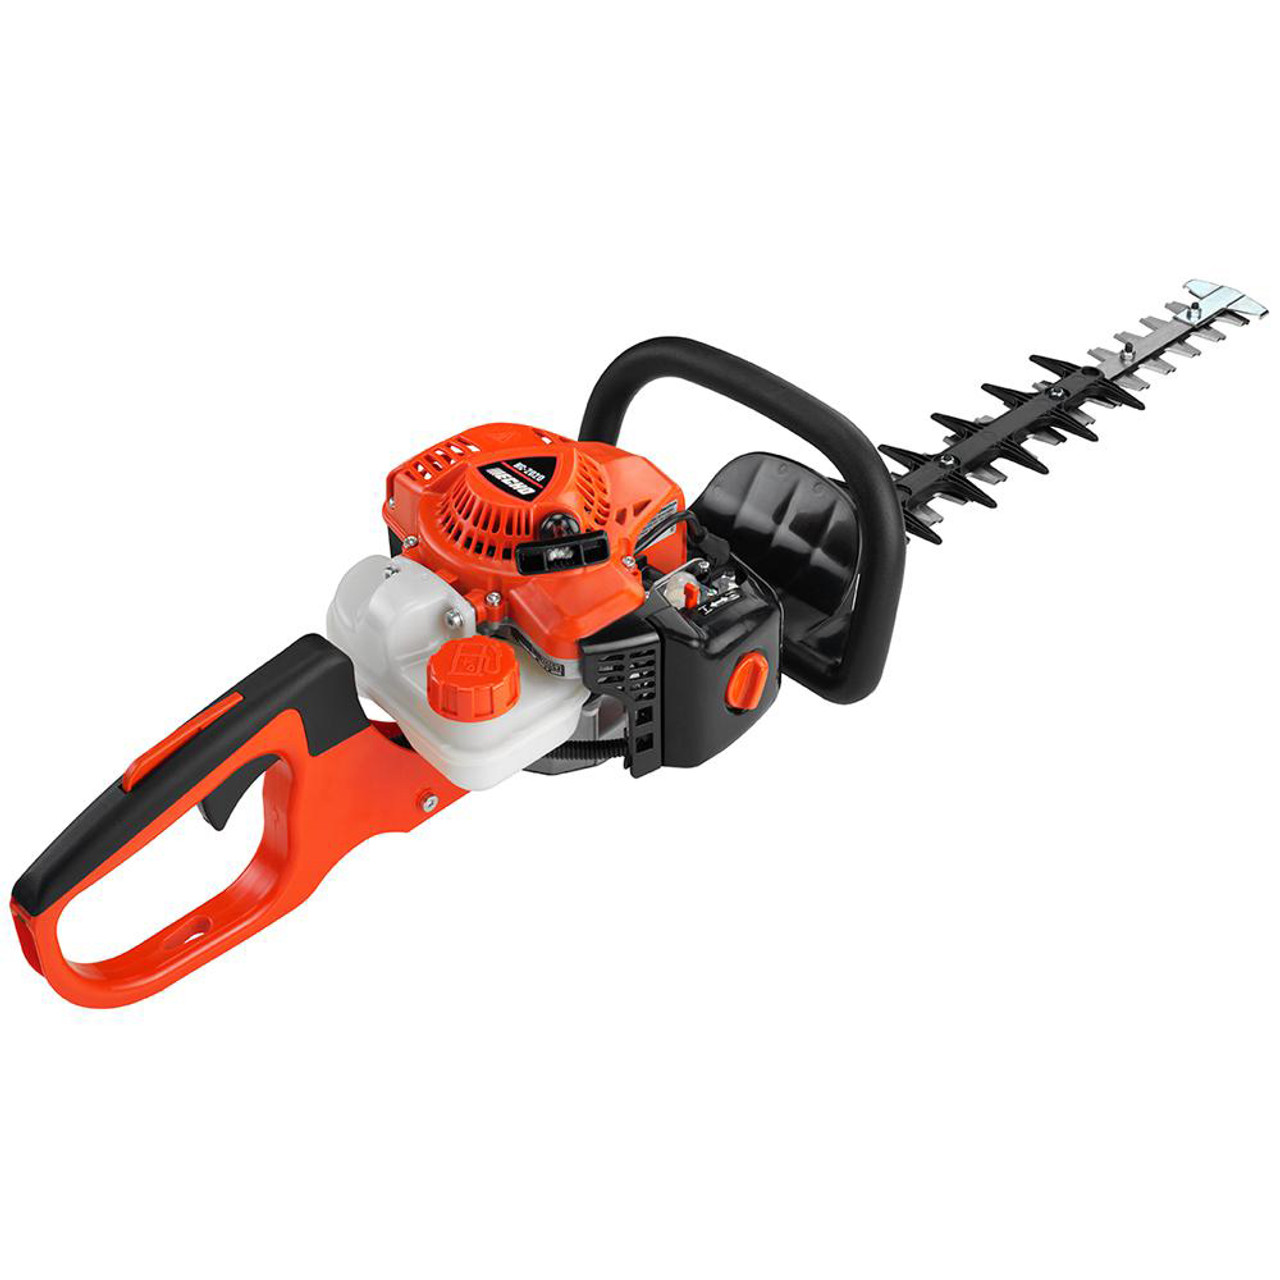 """ECHO HC-2020 21.1cc Hedge Trimmer w/ 20"""" Double-Sided Blades Image"""